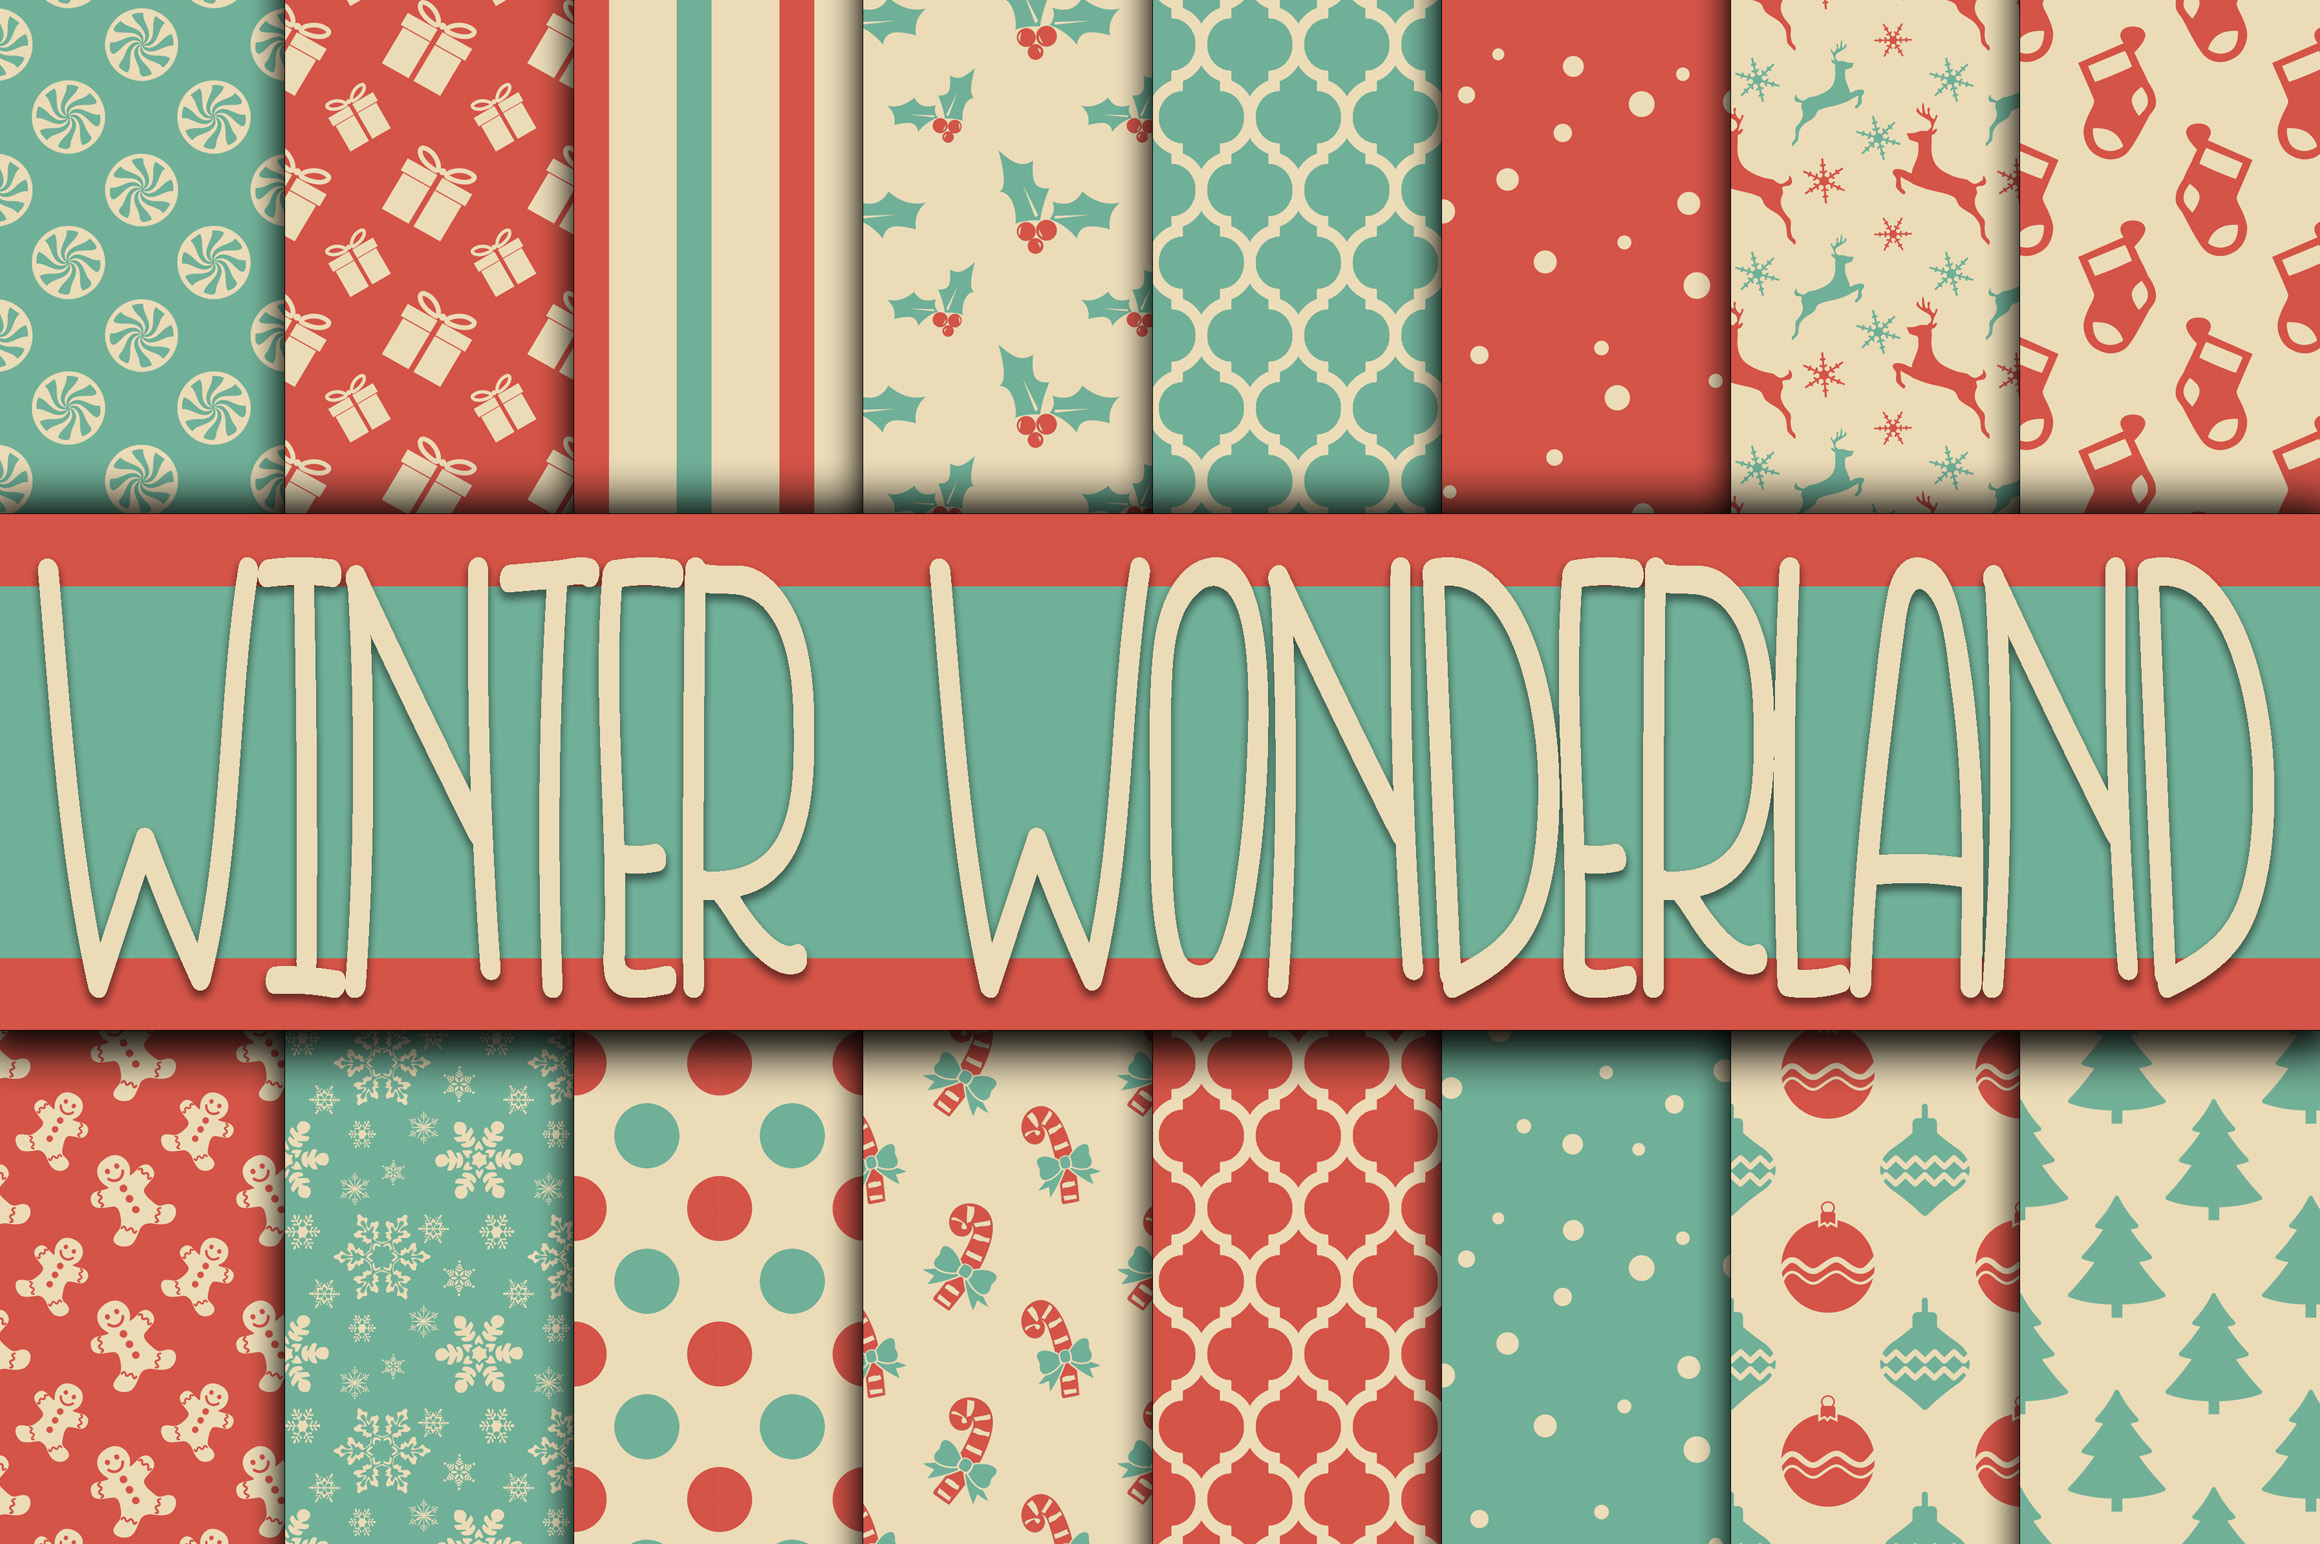 Winter Wonderland Christmas Digital Paper Graphic By oldmarketdesigns